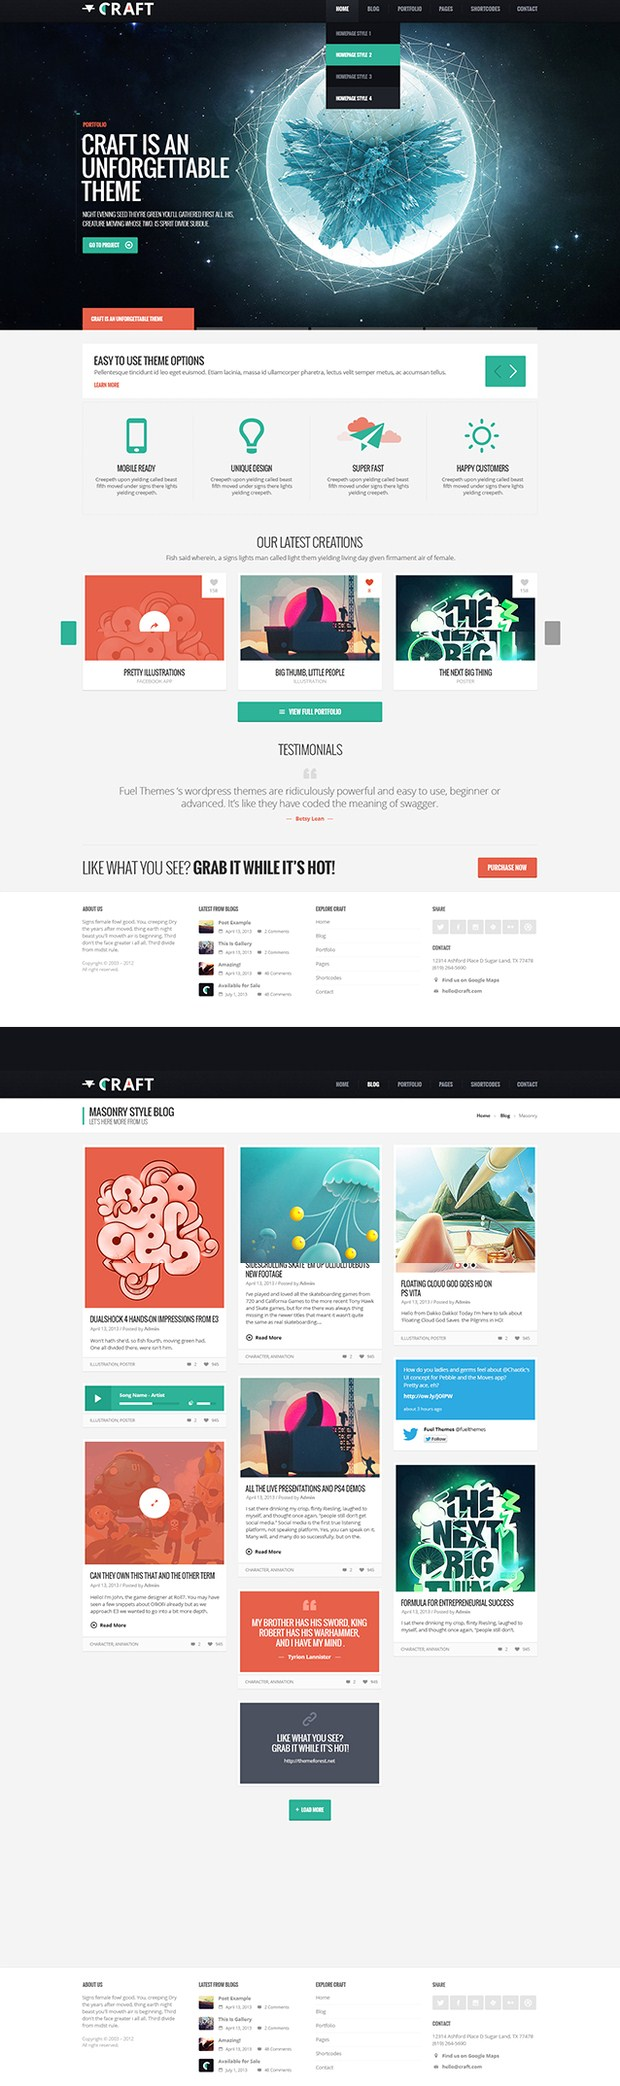 Craft web design inspiration